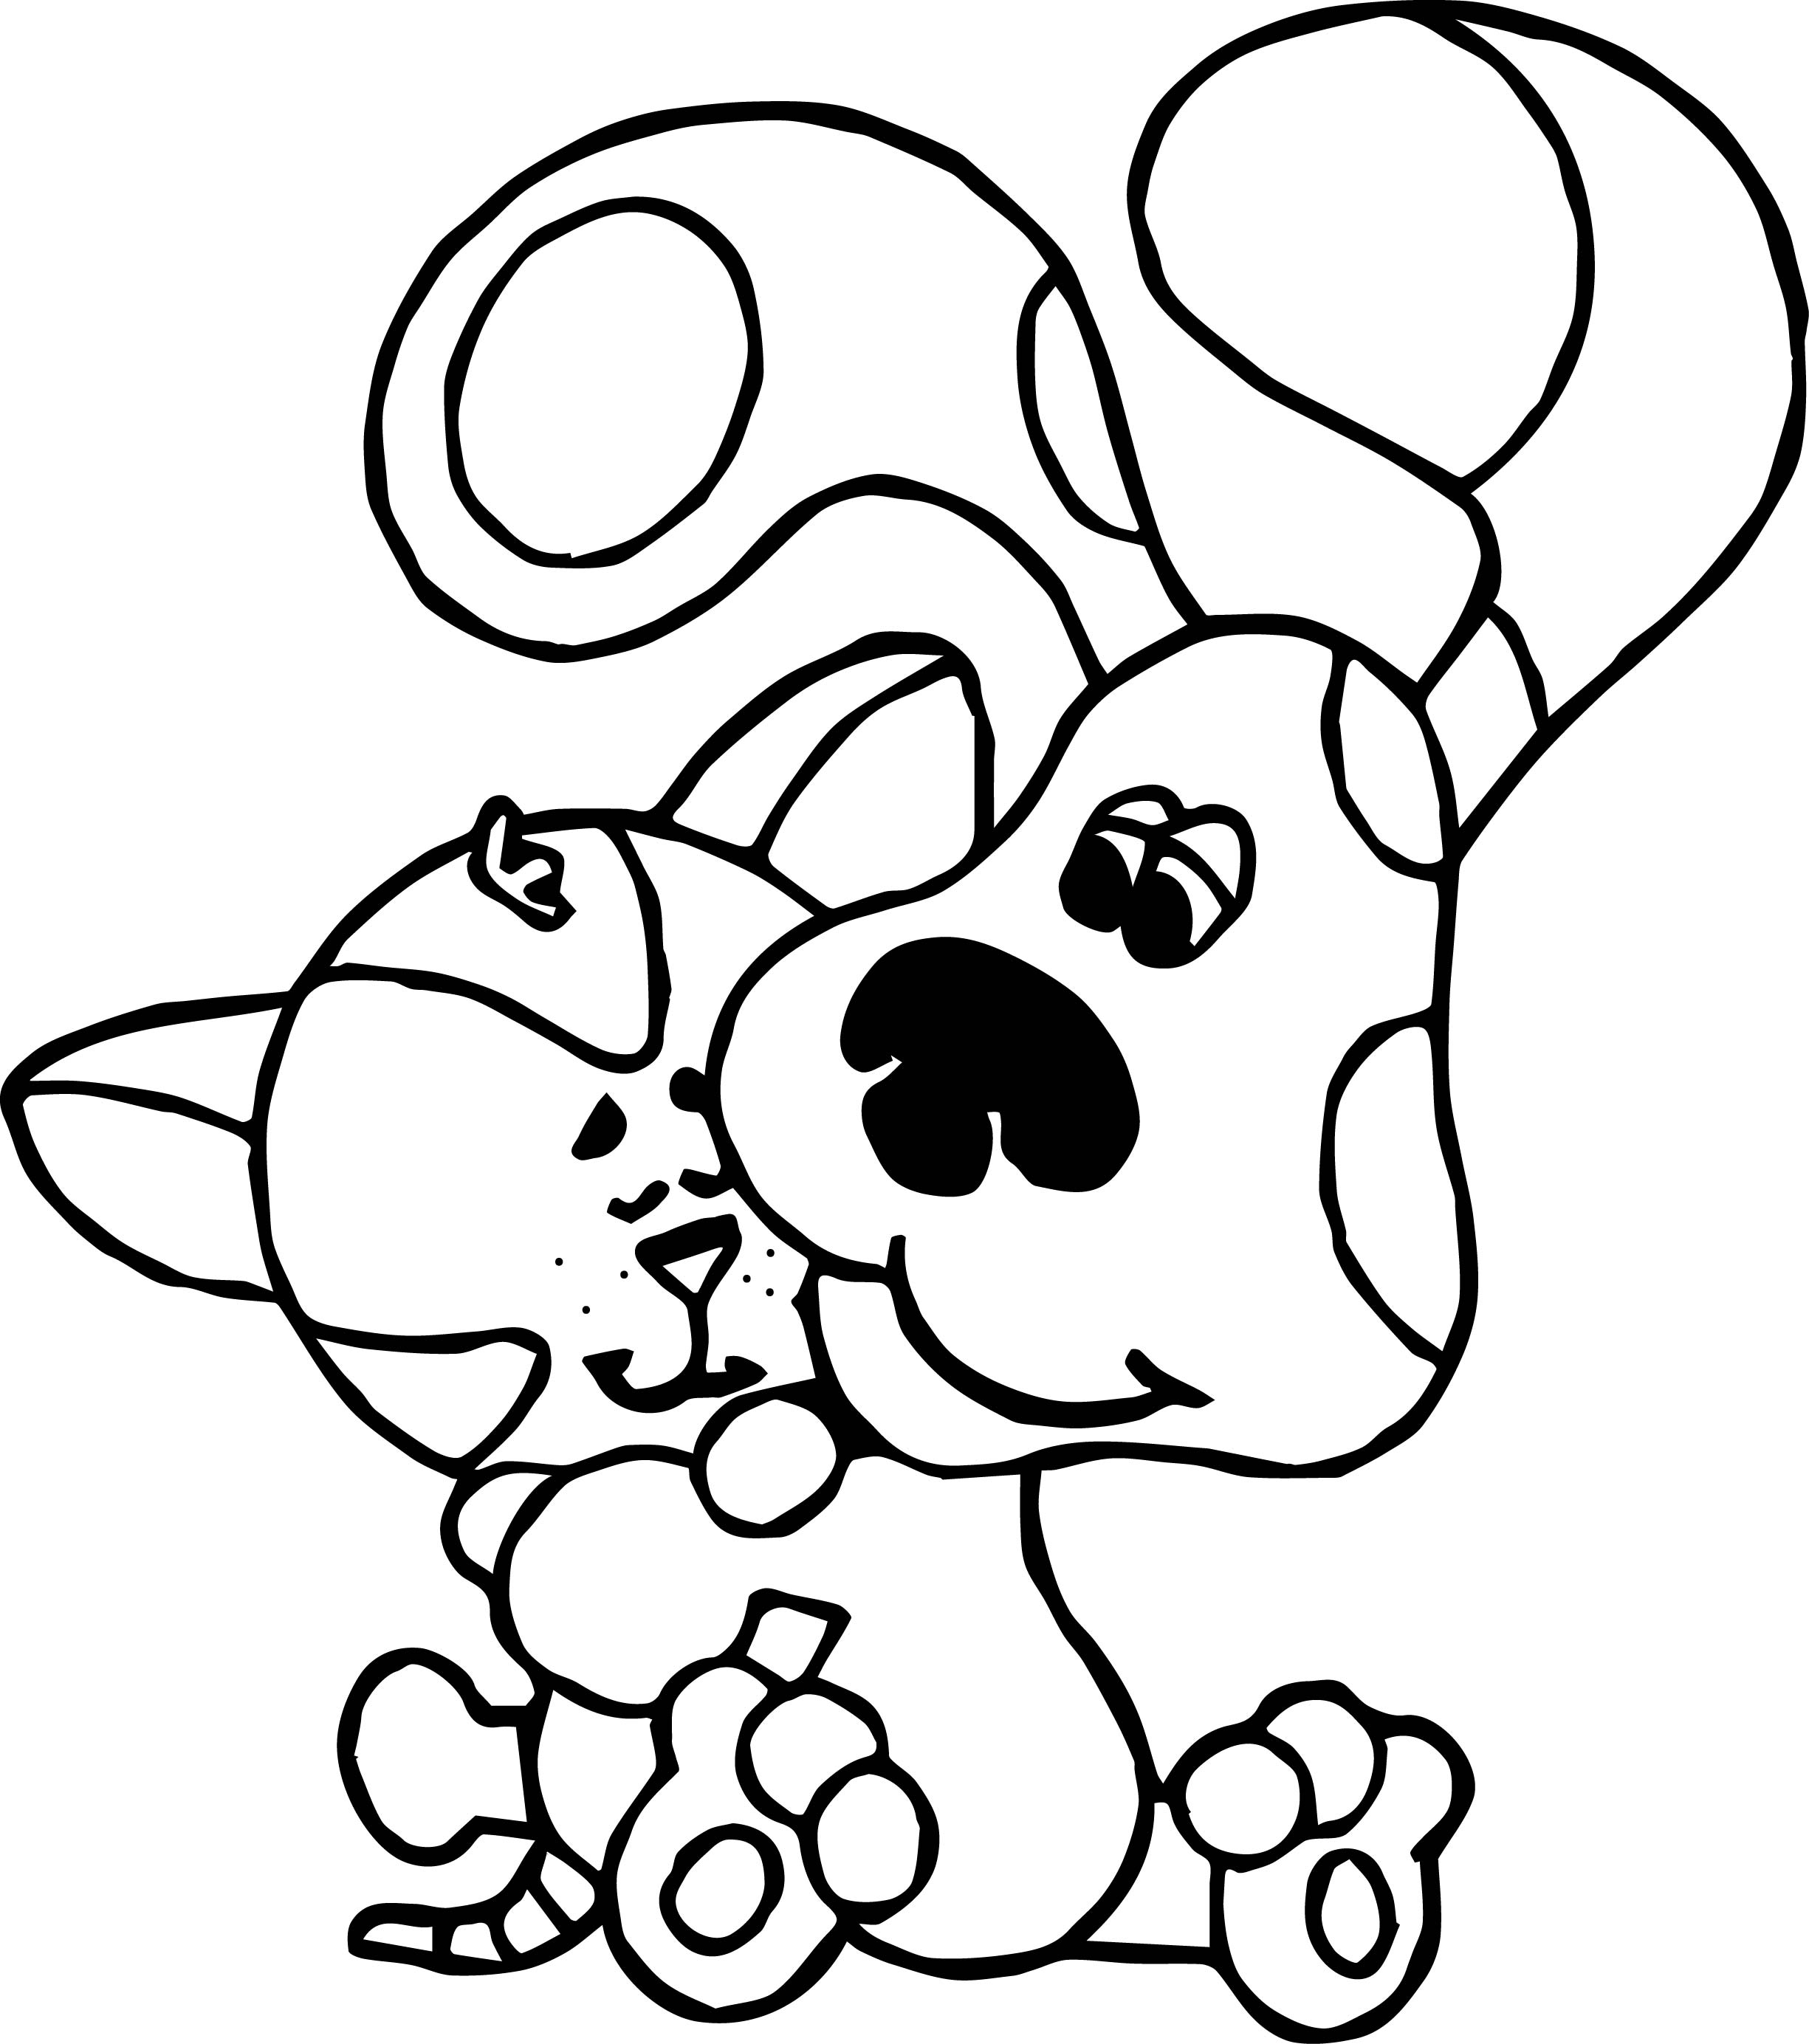 Blues Clues Dog And Cat Coloring Page Wecoloringpage